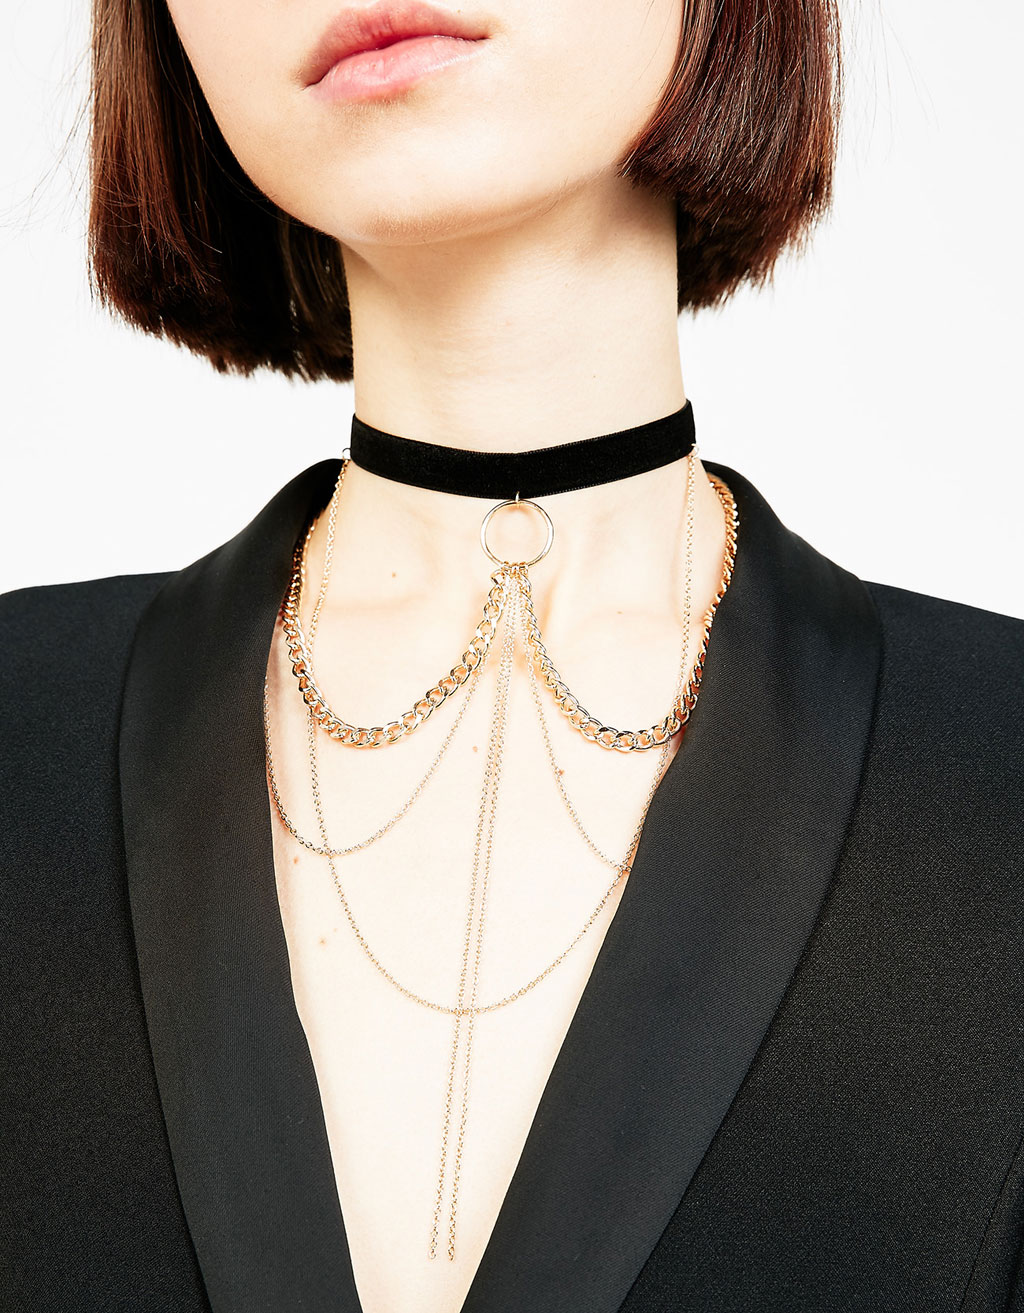 Velvet choker with multiple chains